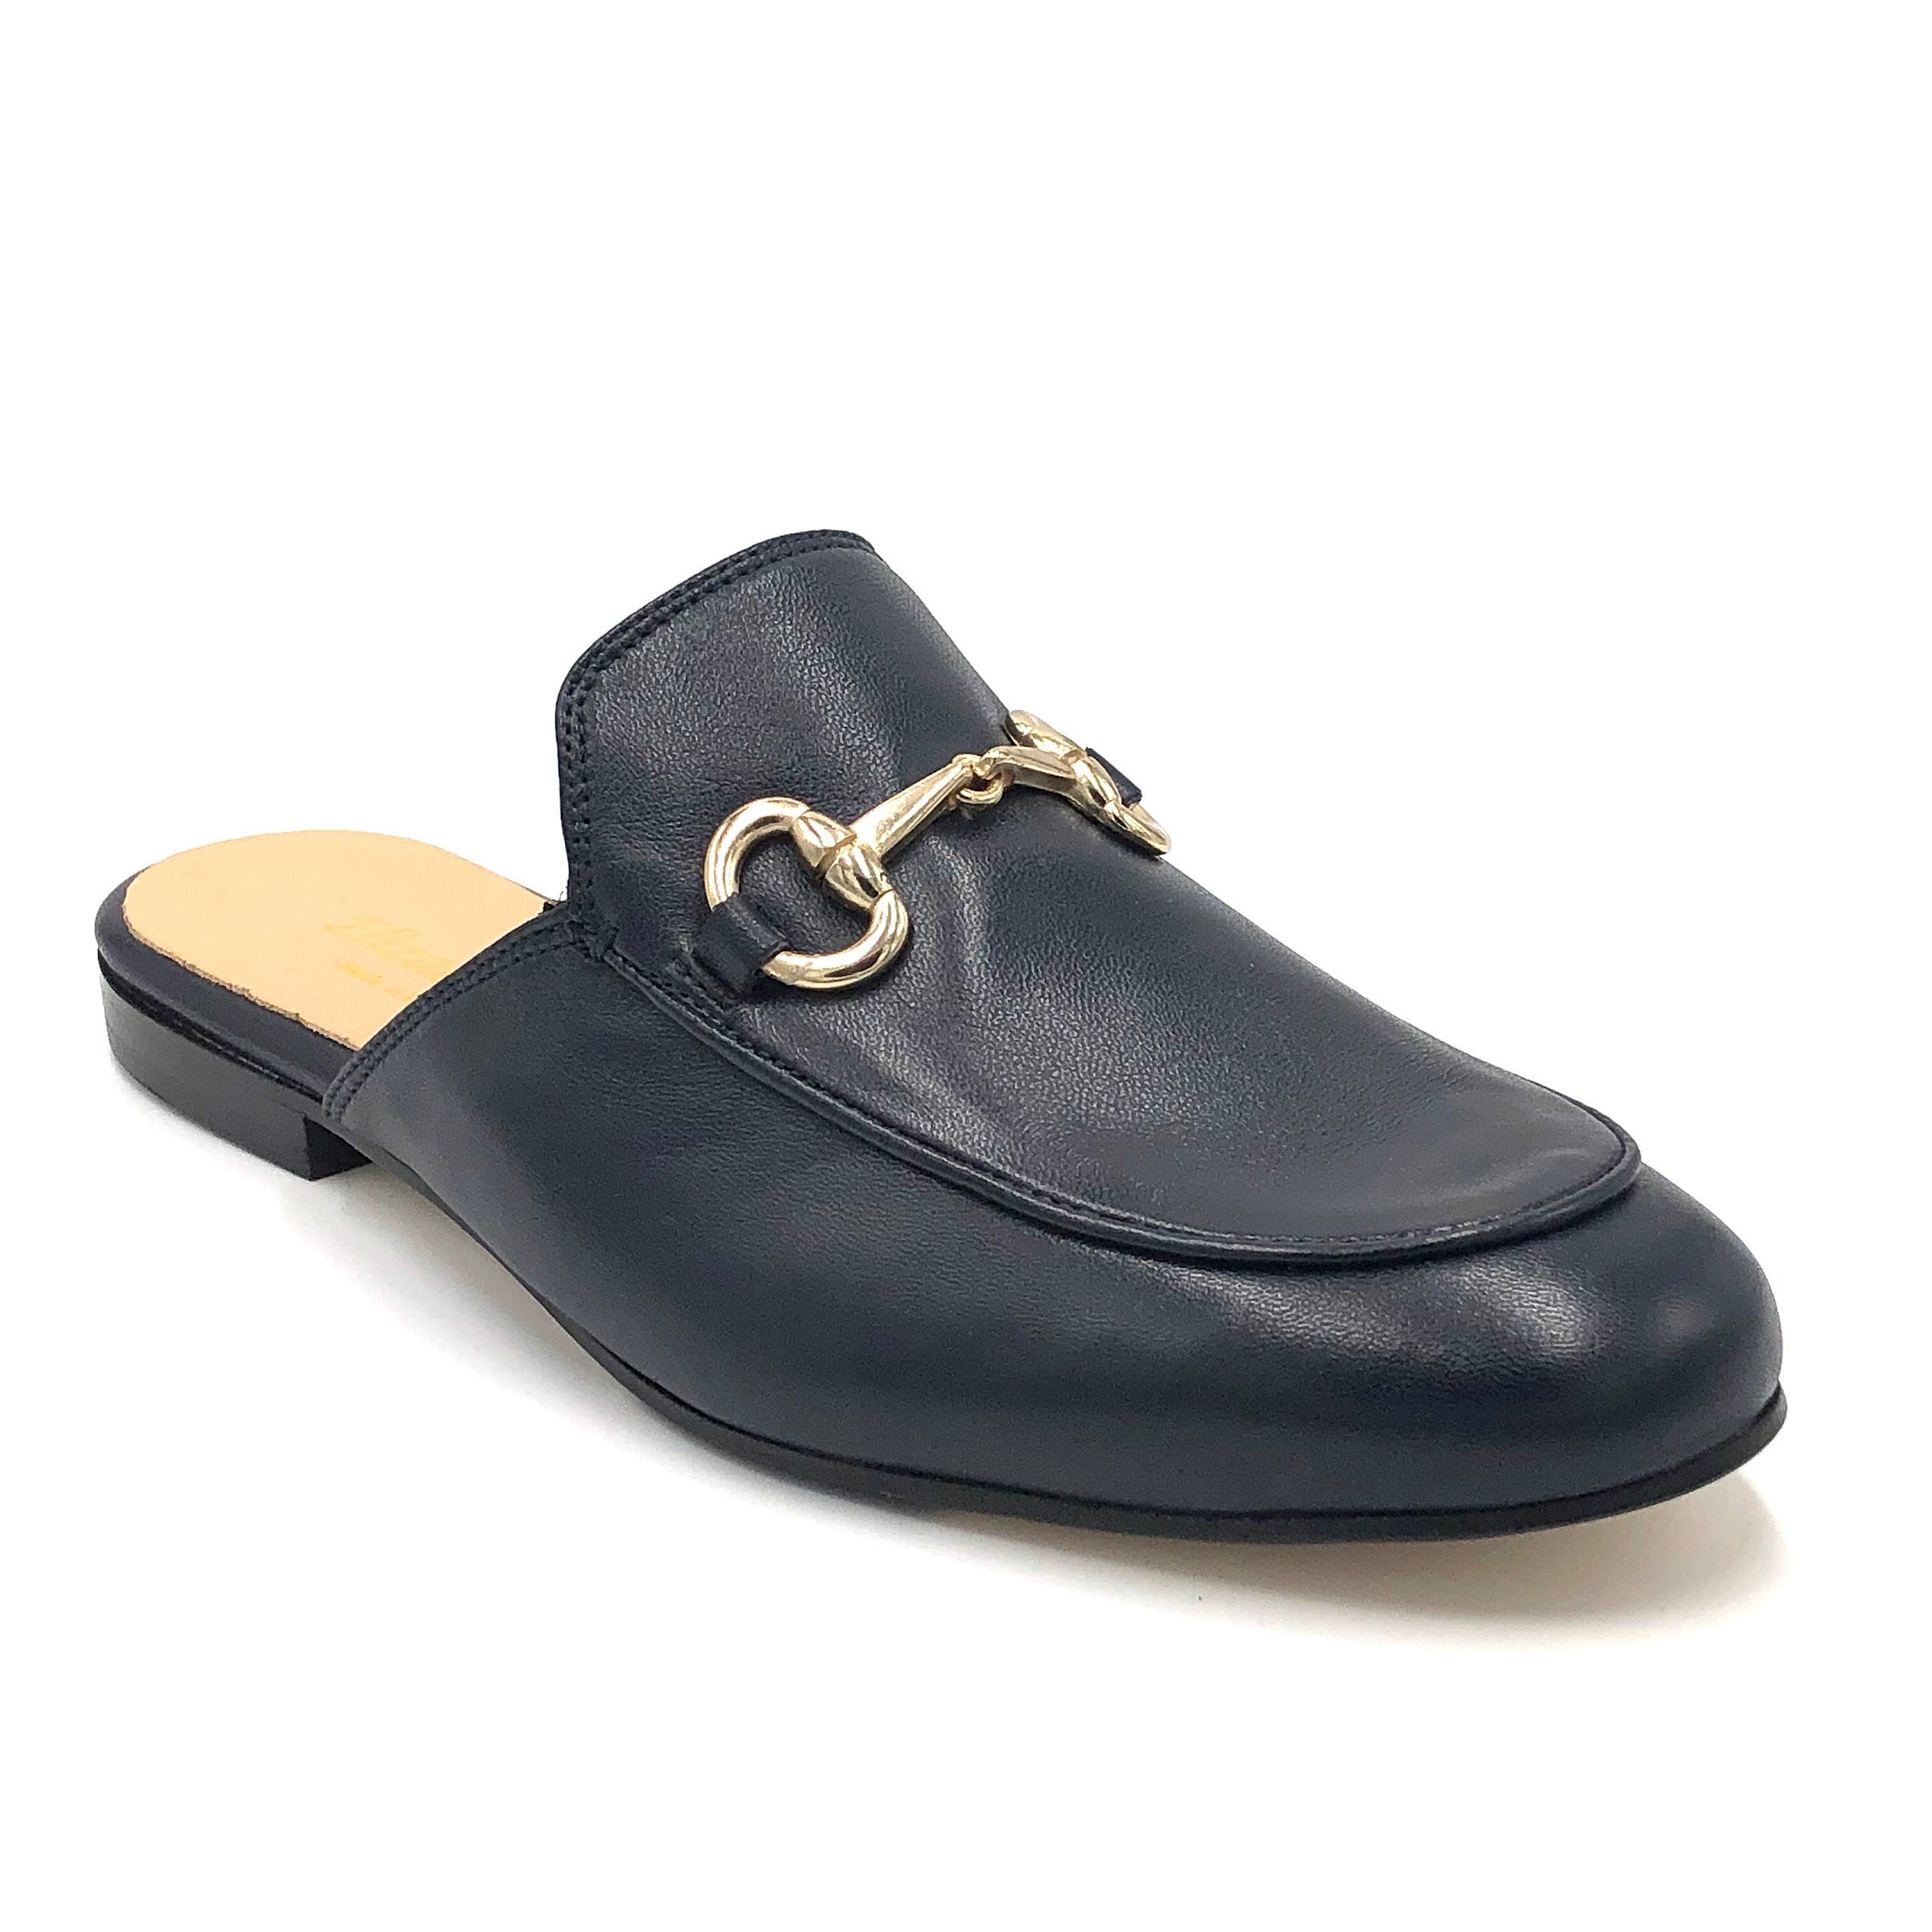 Bitmule - The Loafer Mule with Bit in Navy